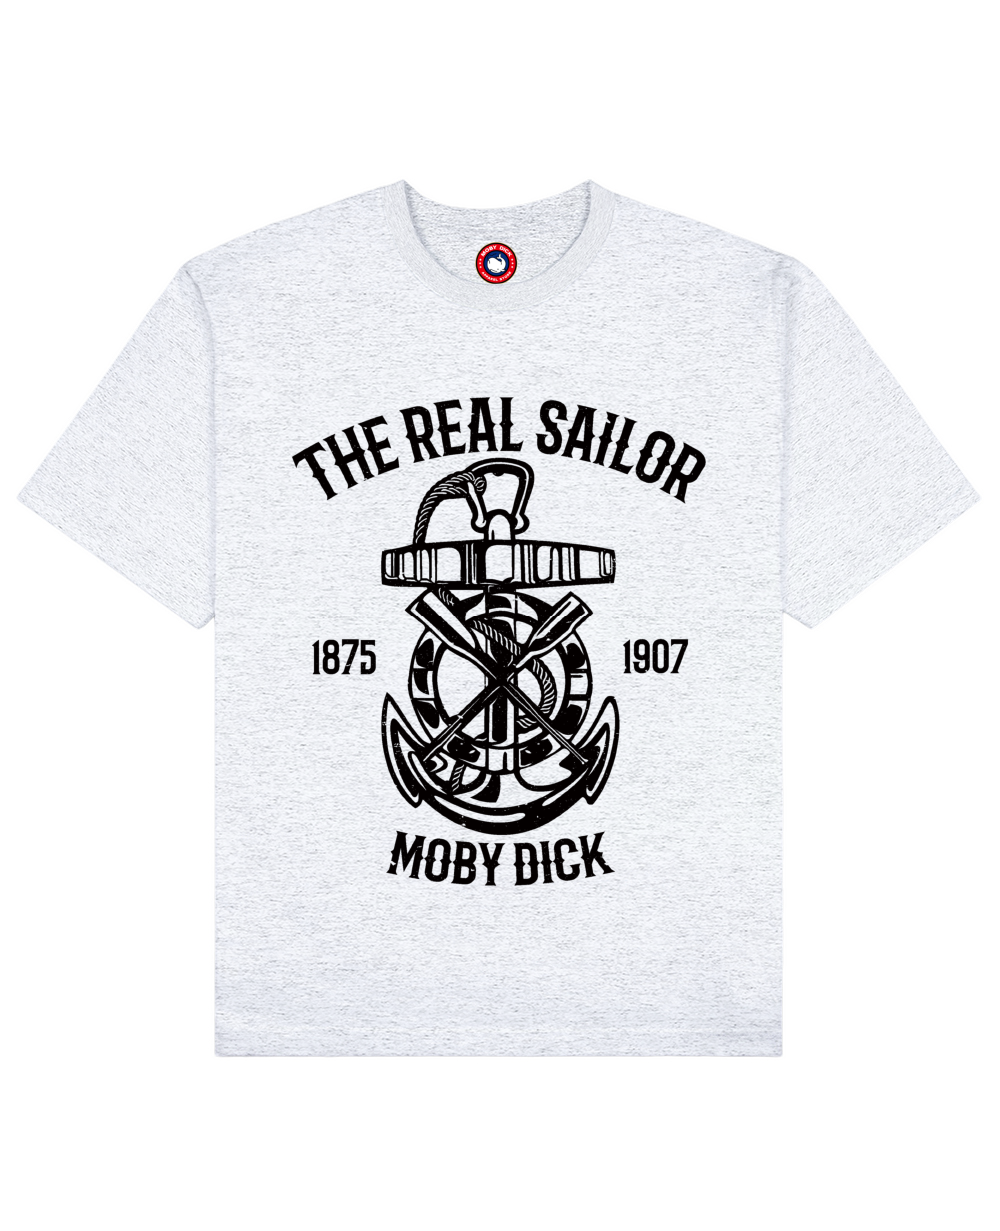 The Real Sailor Print T-Shirt in Light Gray